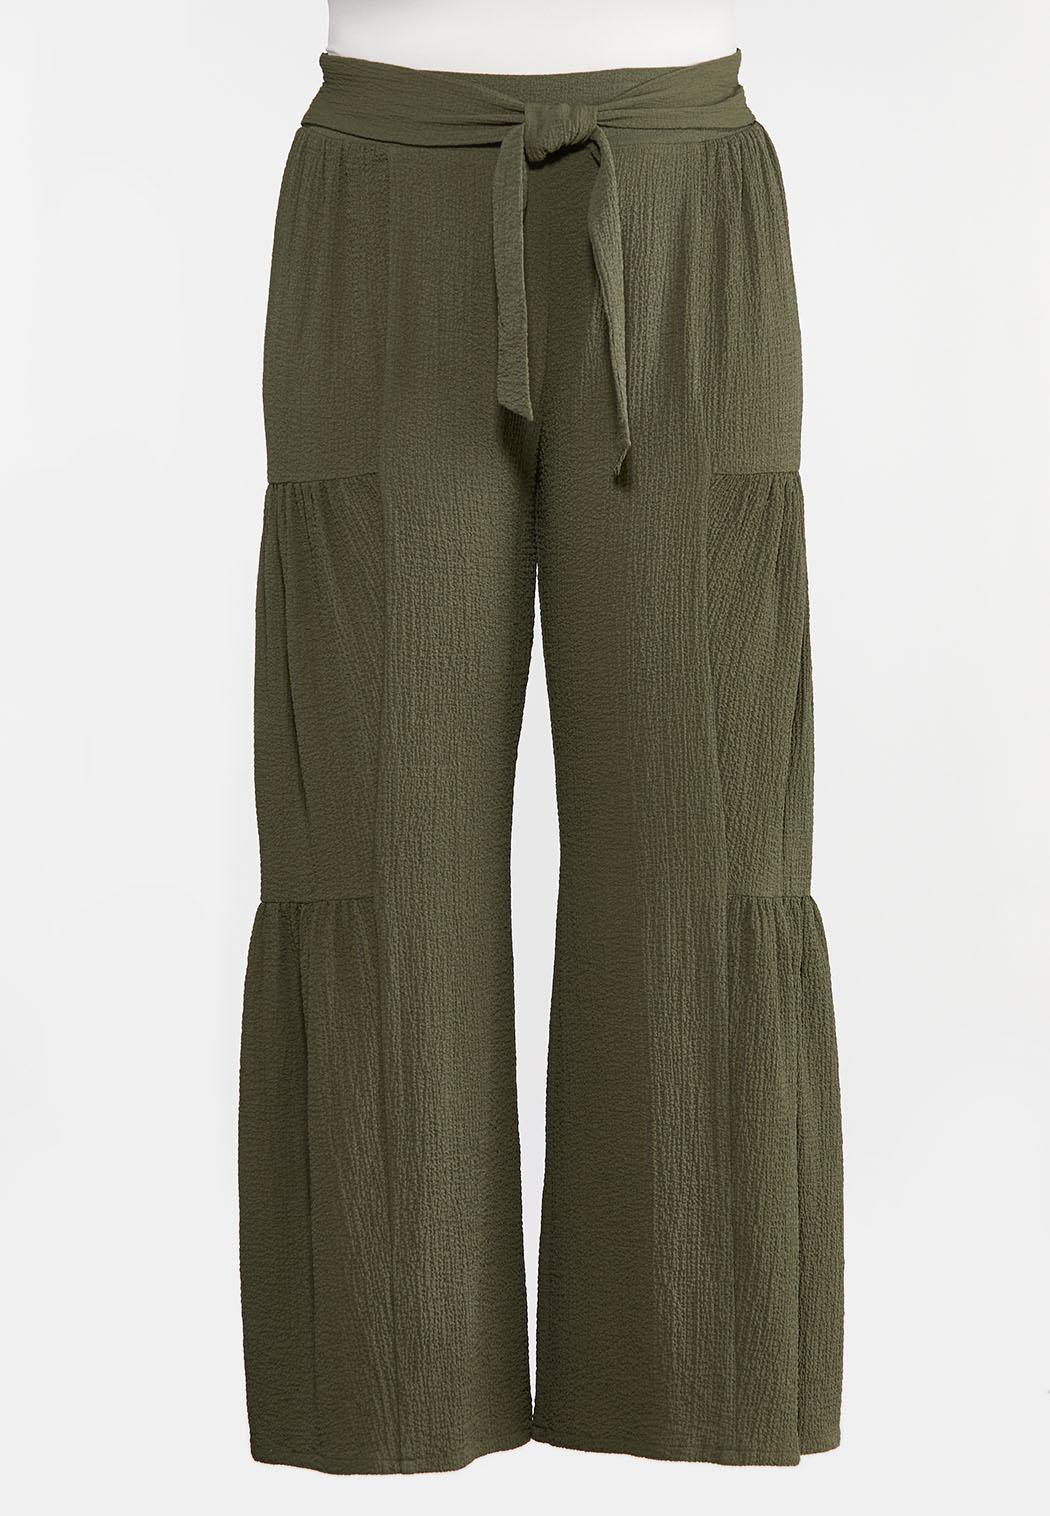 Plus Size Tiered Olive Pants (Item #44287731)